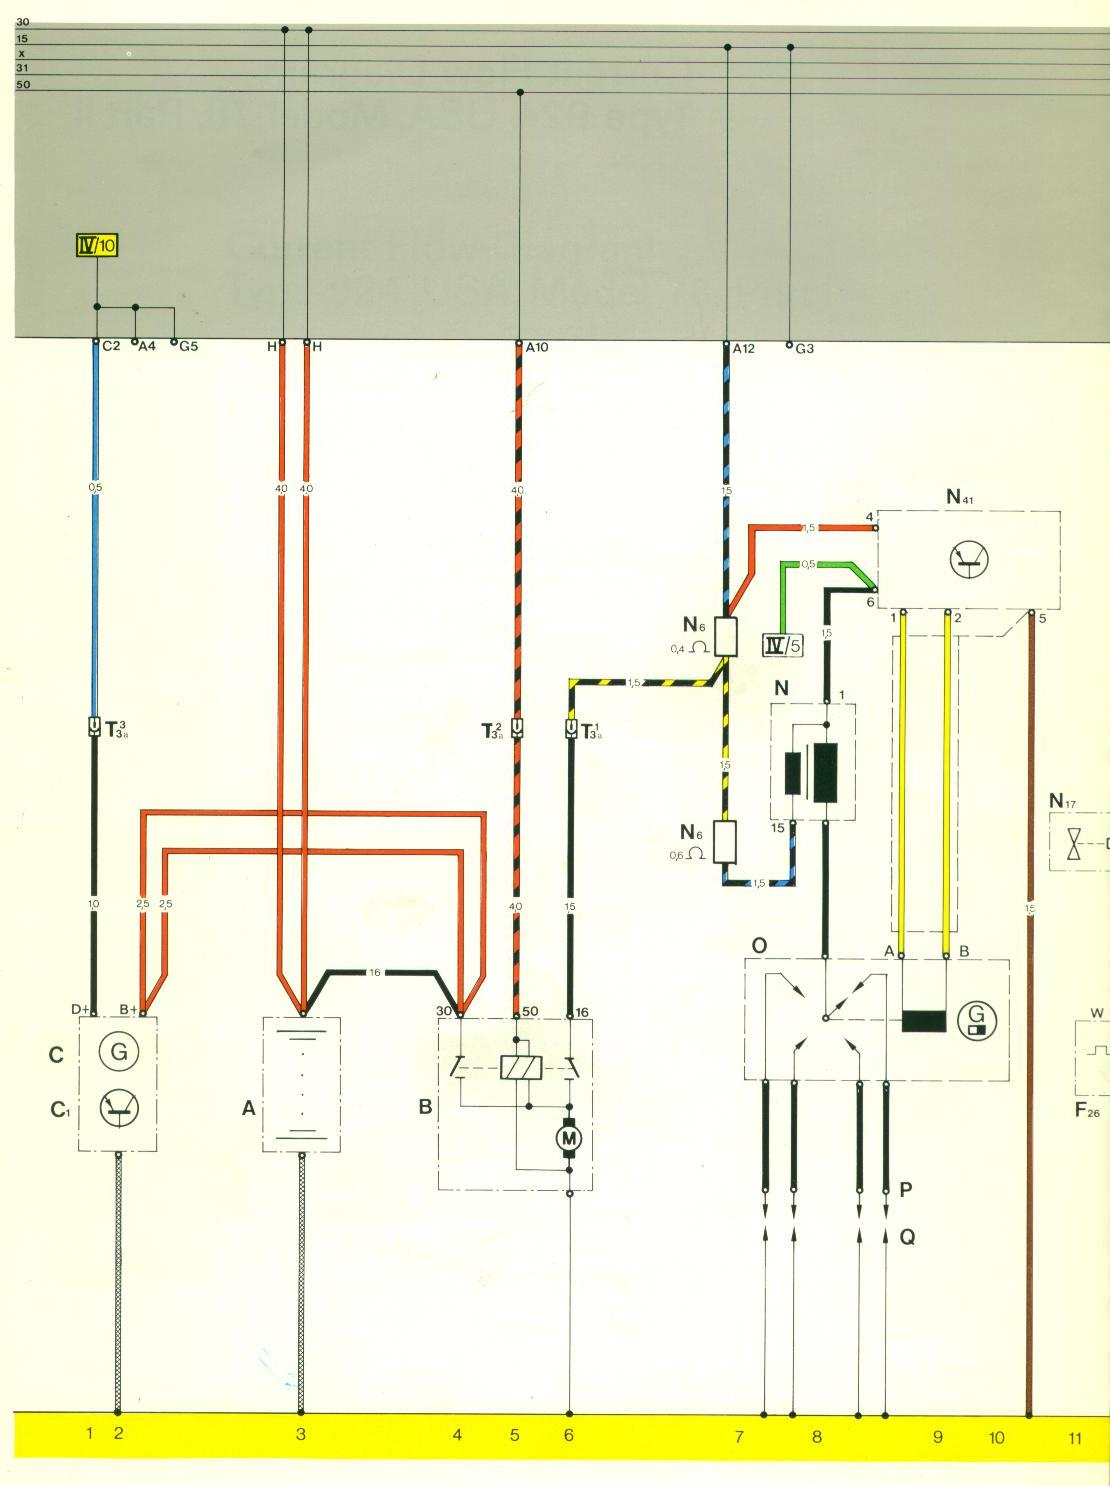 1986 Porsche 944 Ignition Wiring Diagram | Wiring Library